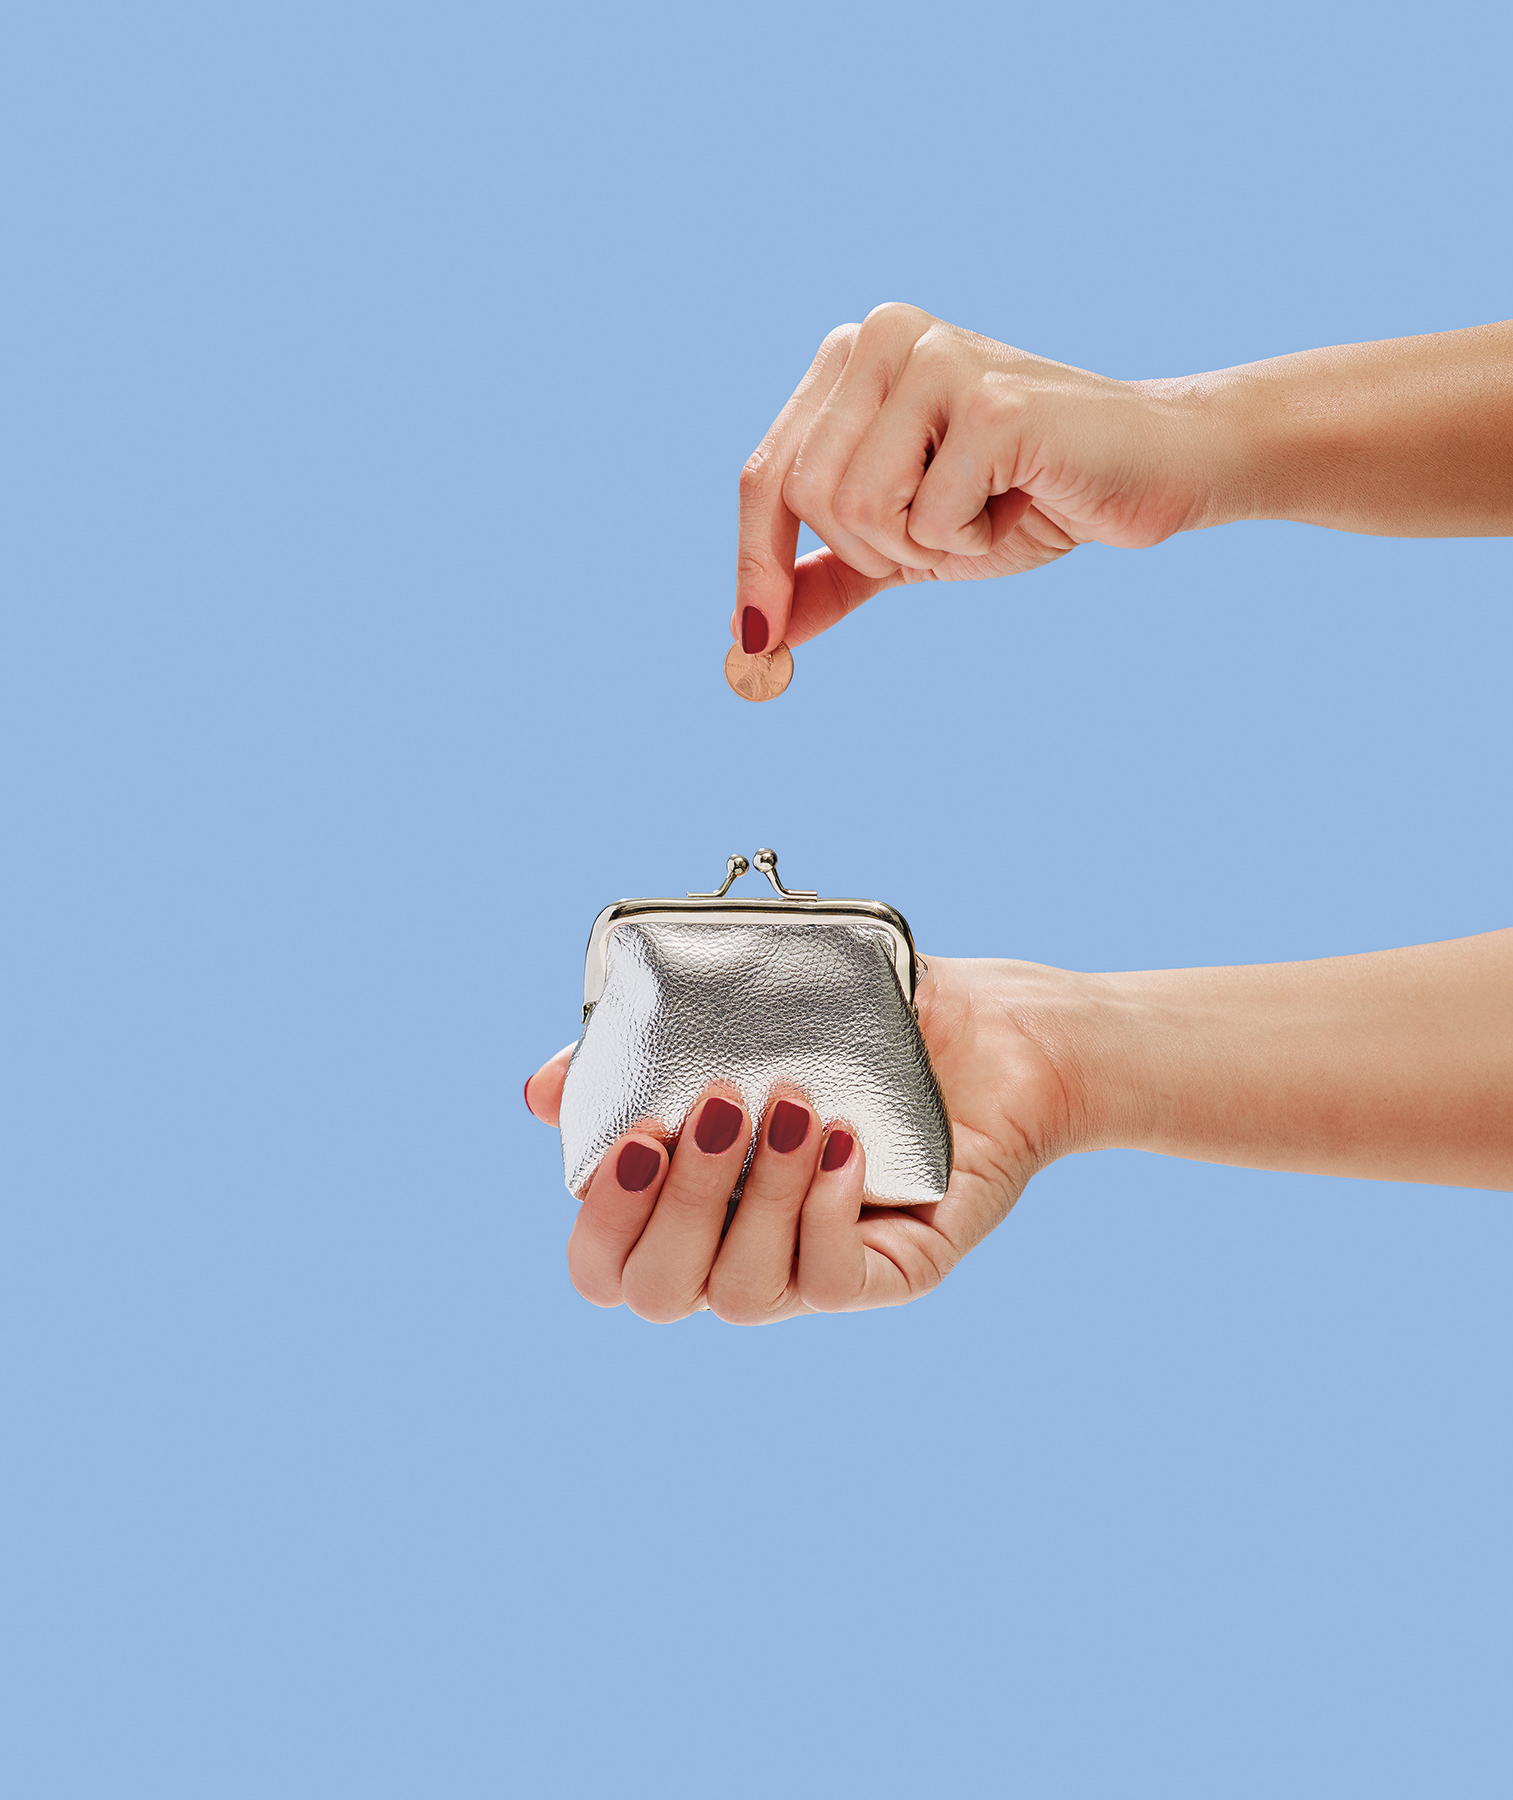 Hand putting penny in coin purse